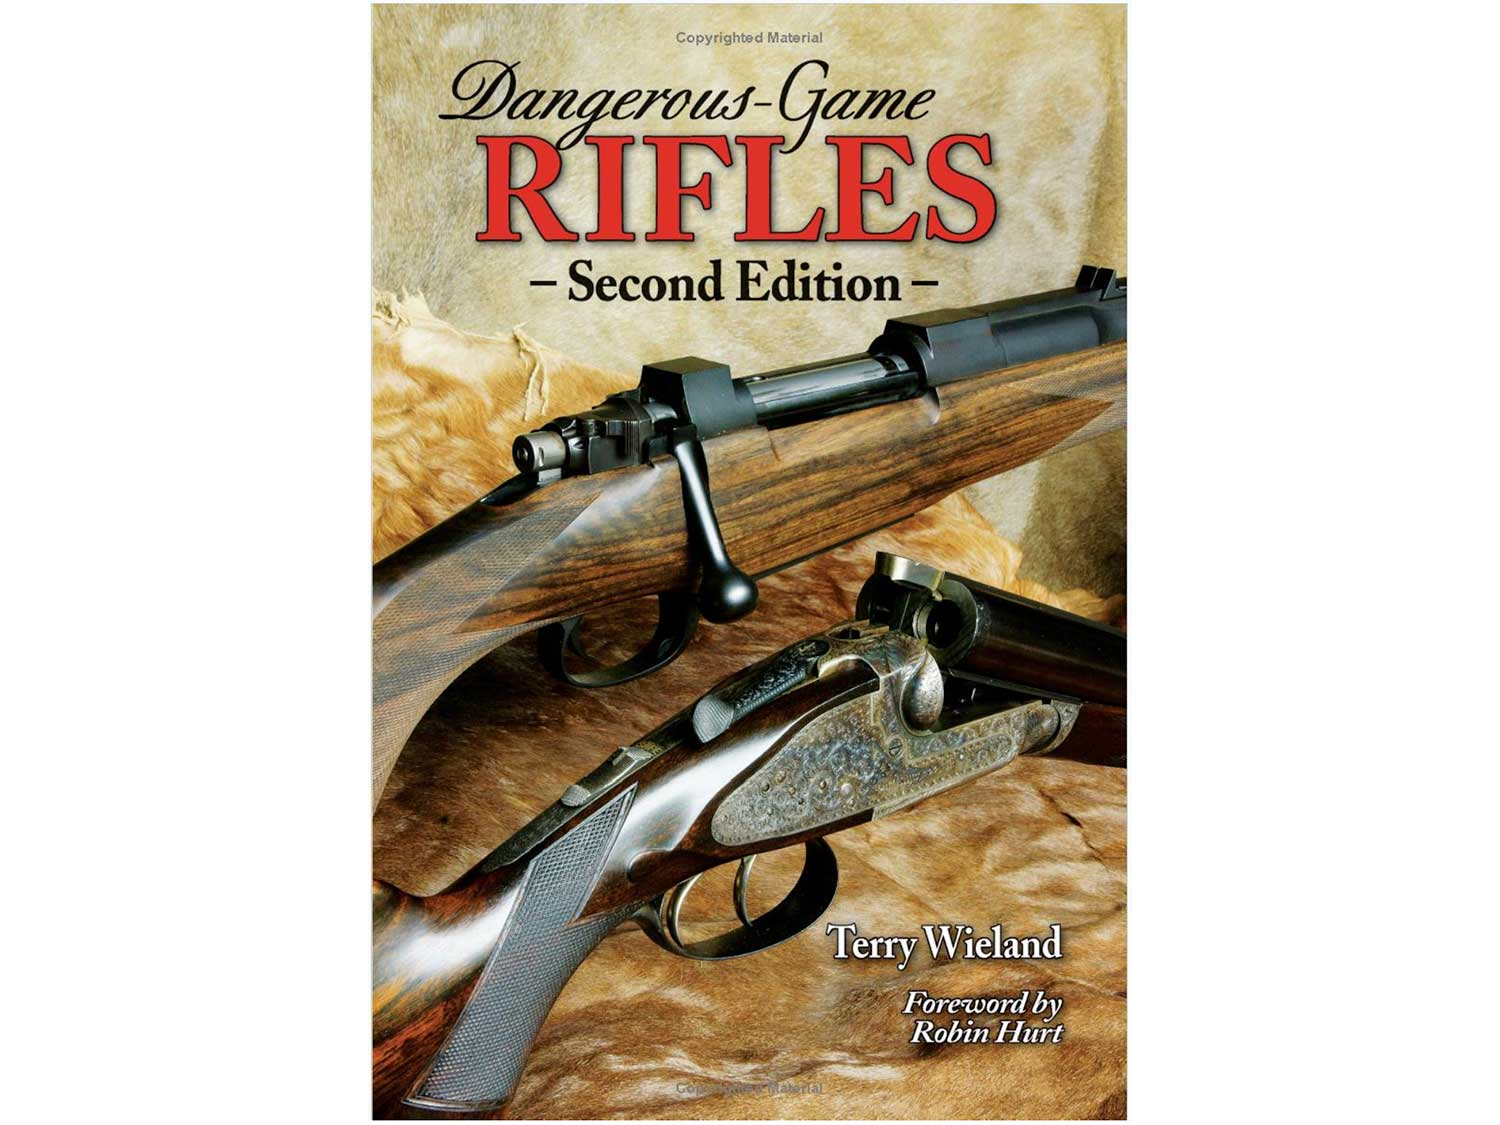 Dangerous Game Rifles, by Terry Wieland